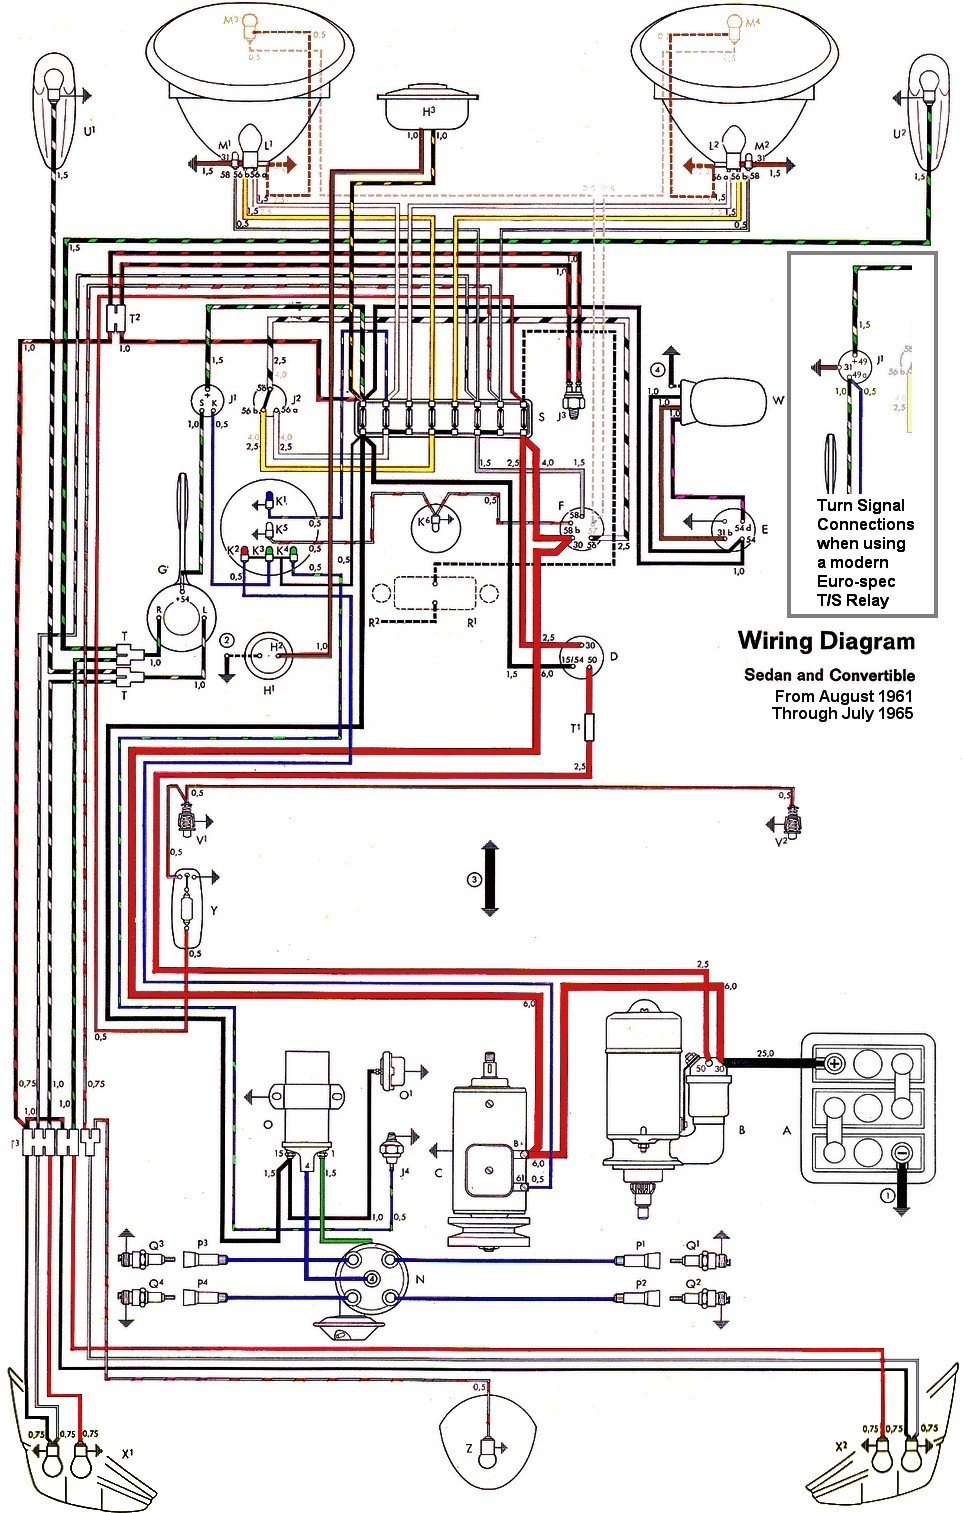 1970 vw wiring diagram wiring schematics diagram rh mychampagnedaze com VW  Beetle Alternator Wiring VW Alternator Wiring Diagram